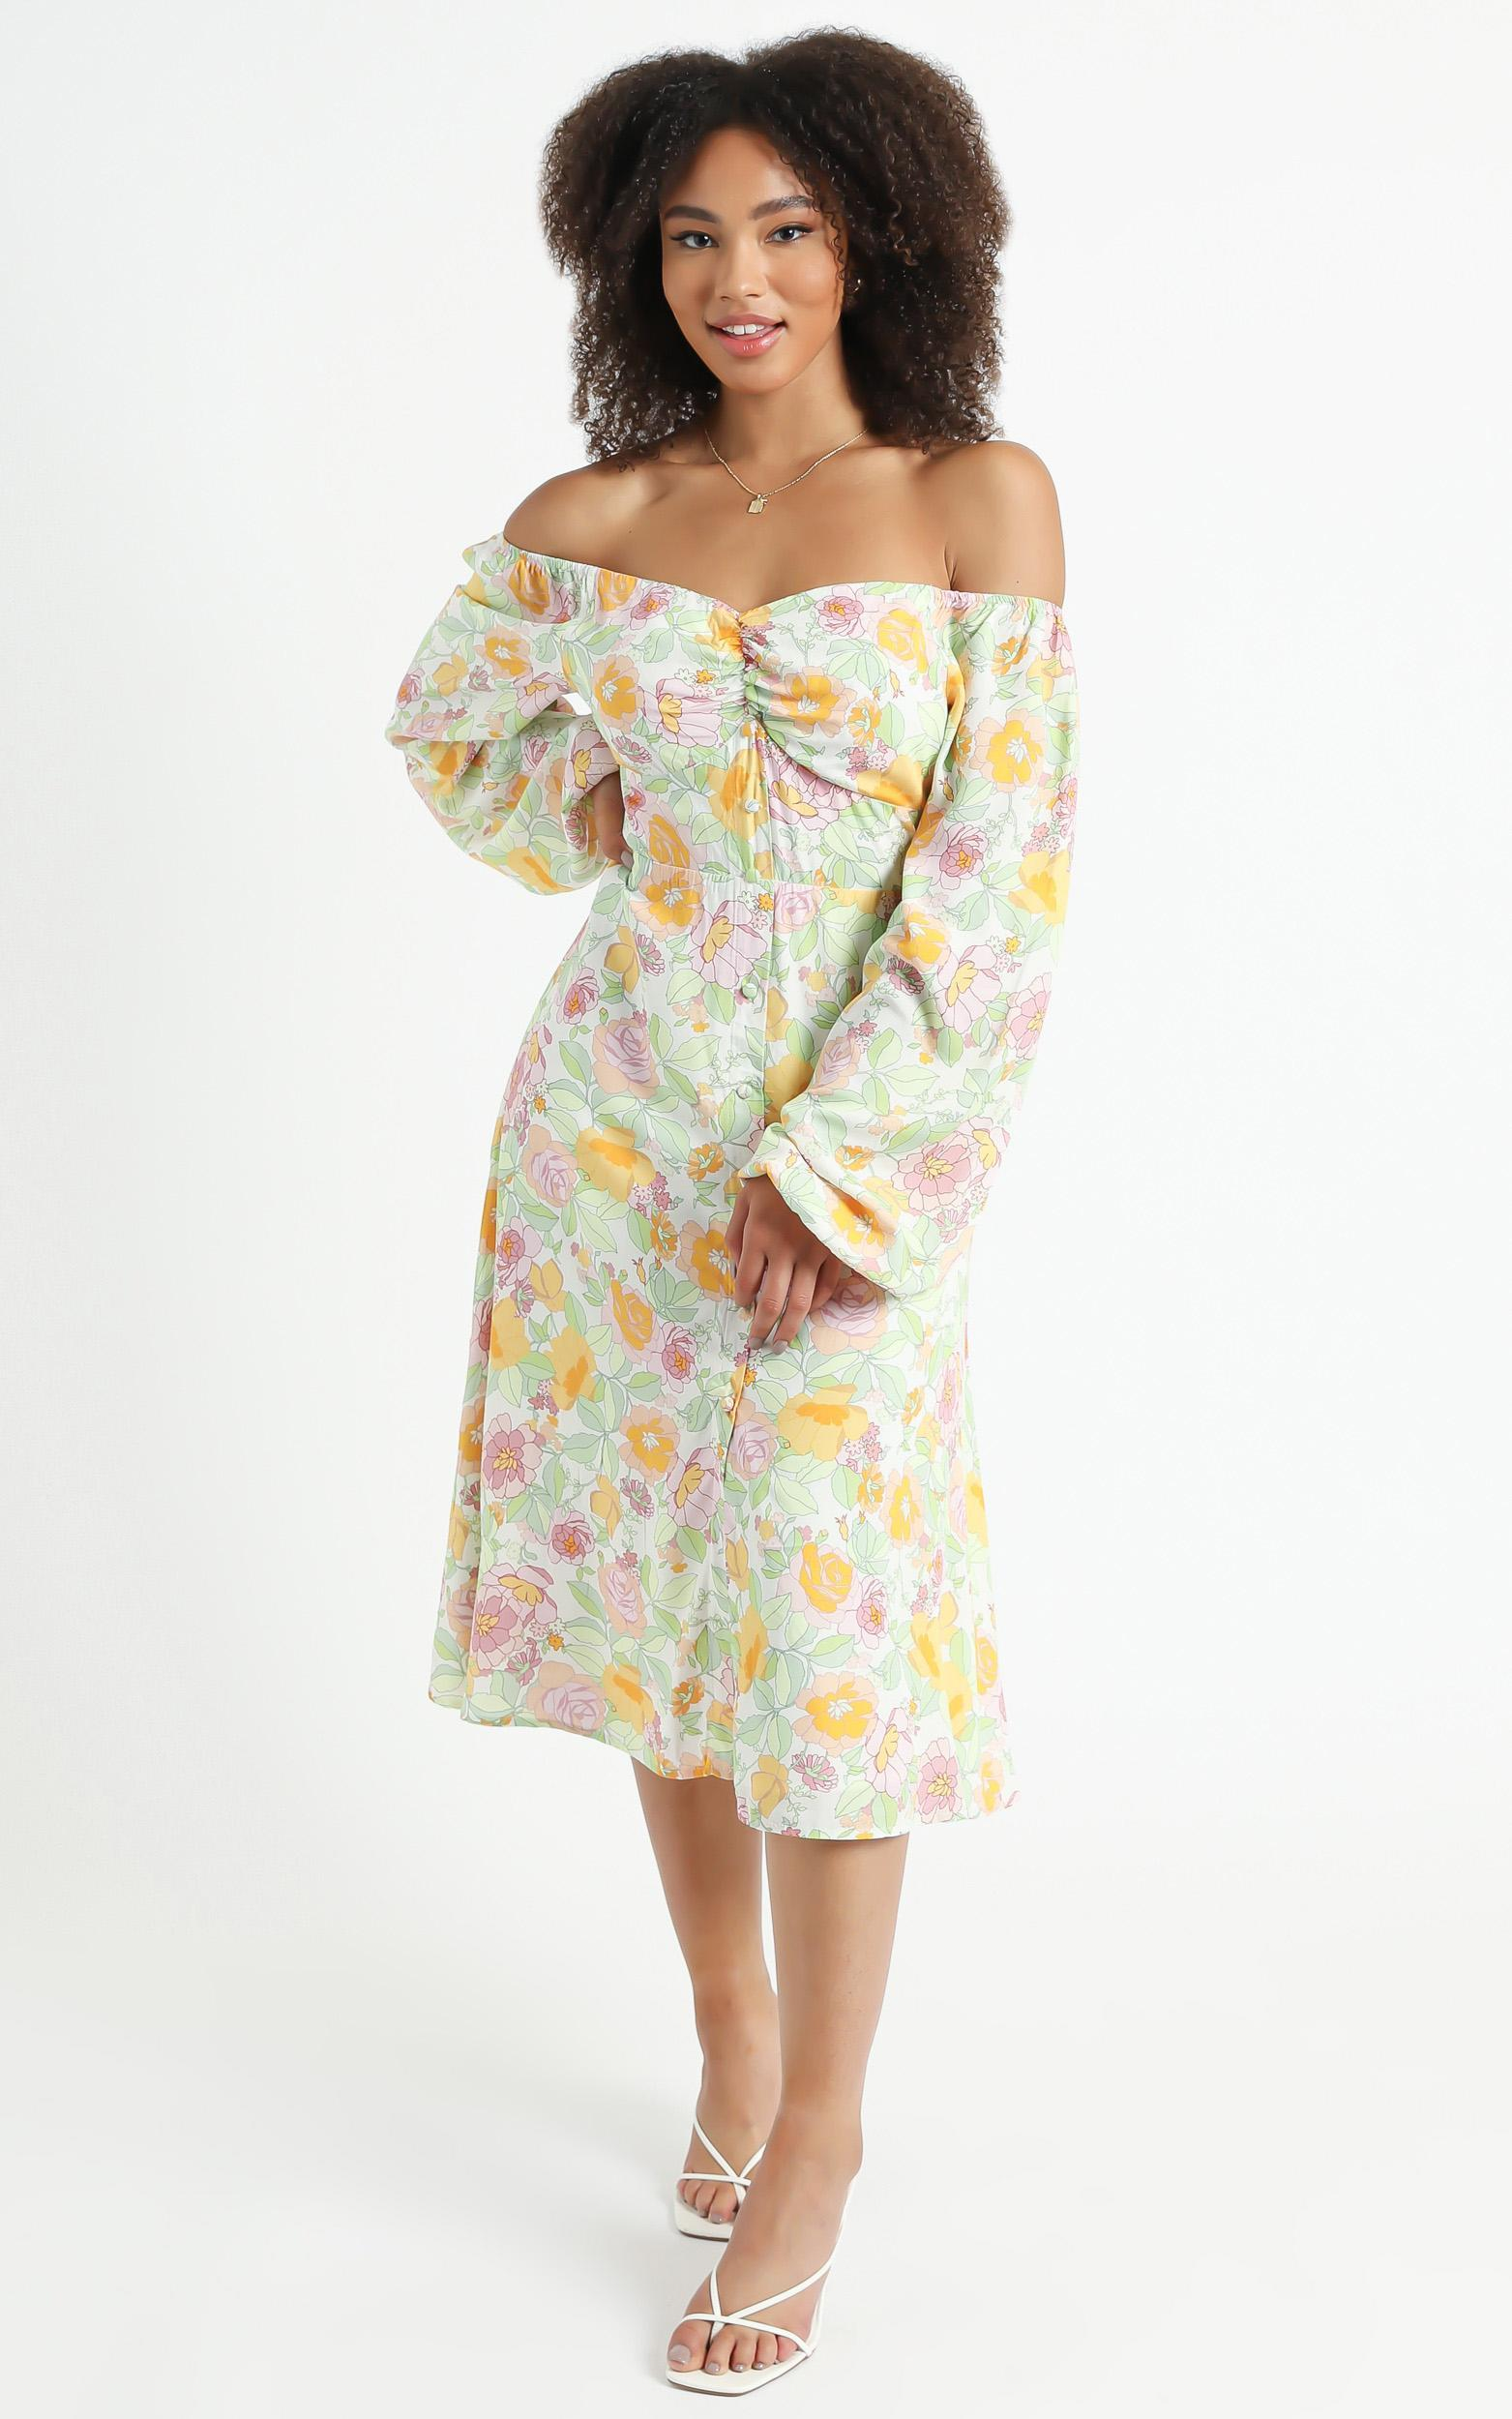 Erinia Dress in Linear Floral - 06, CRE1, hi-res image number null